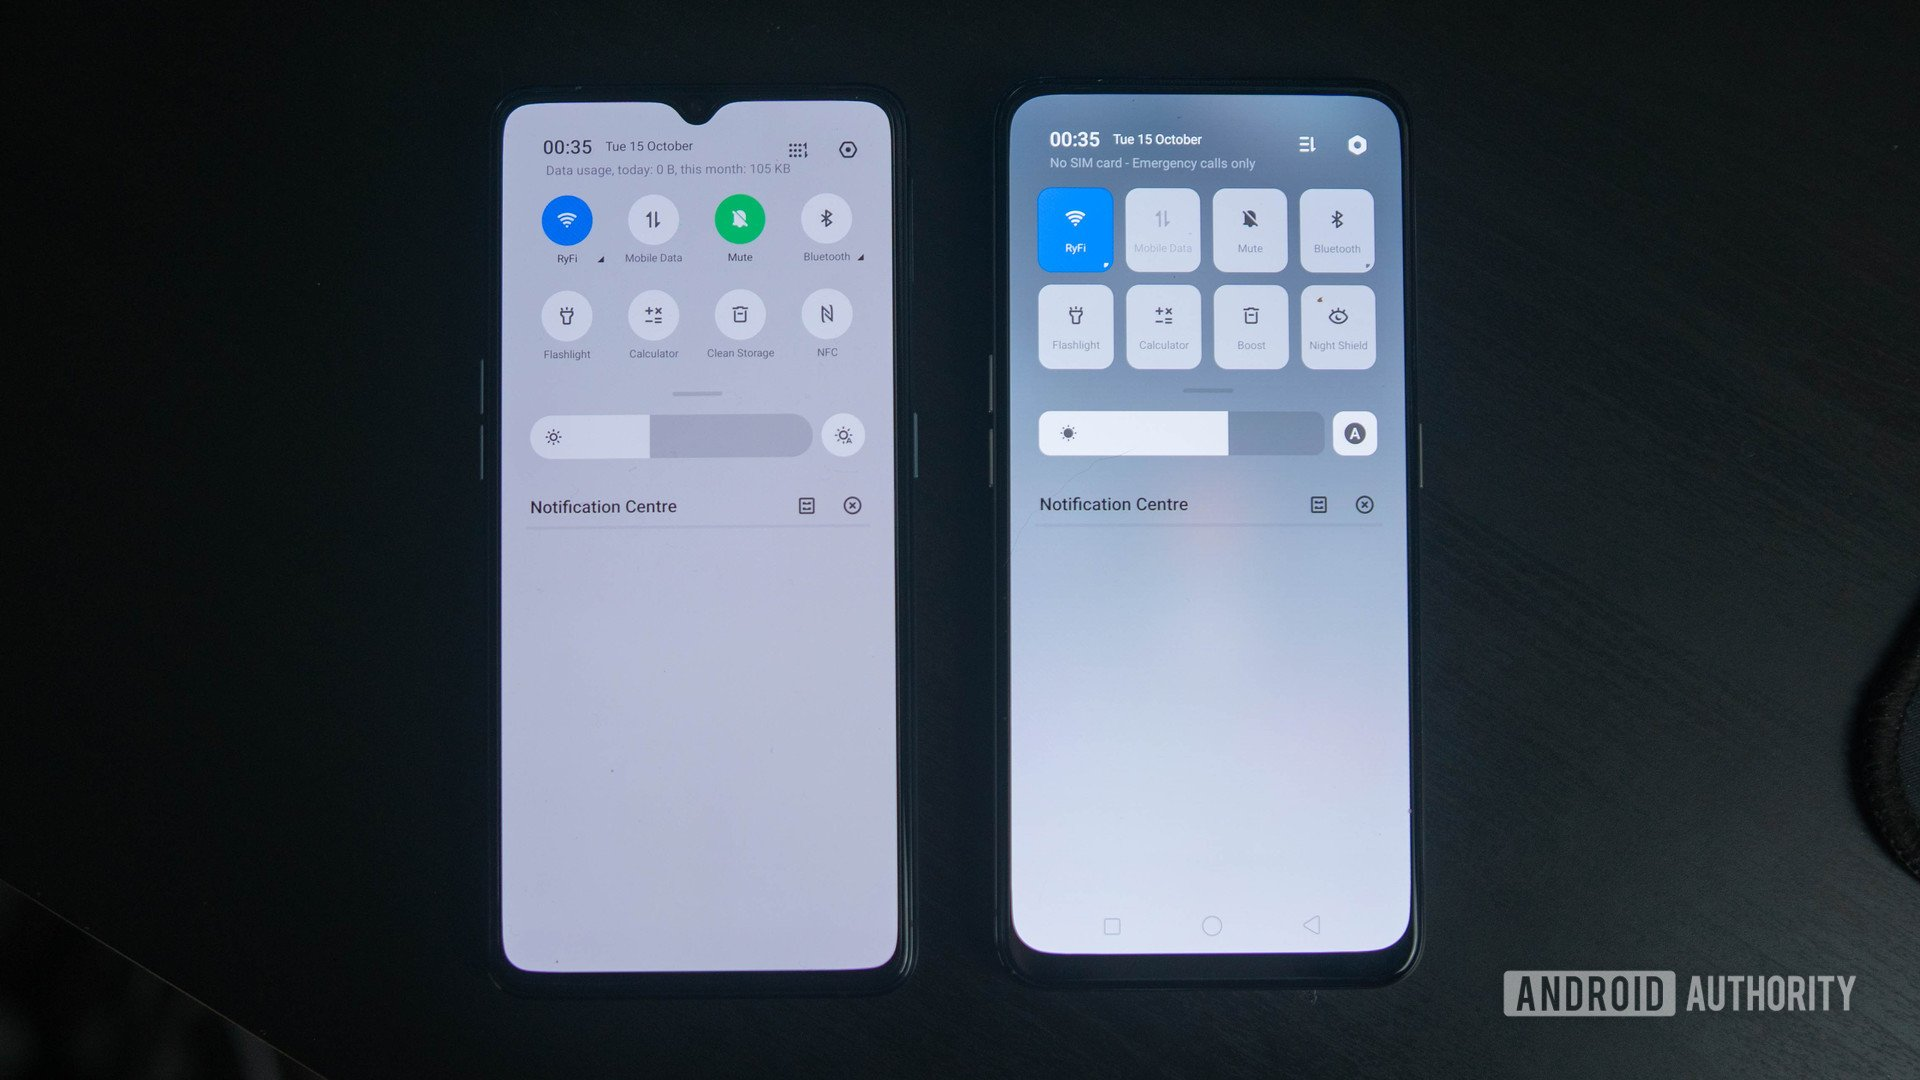 Realme X2 Pro quick settings comparison to Realme X